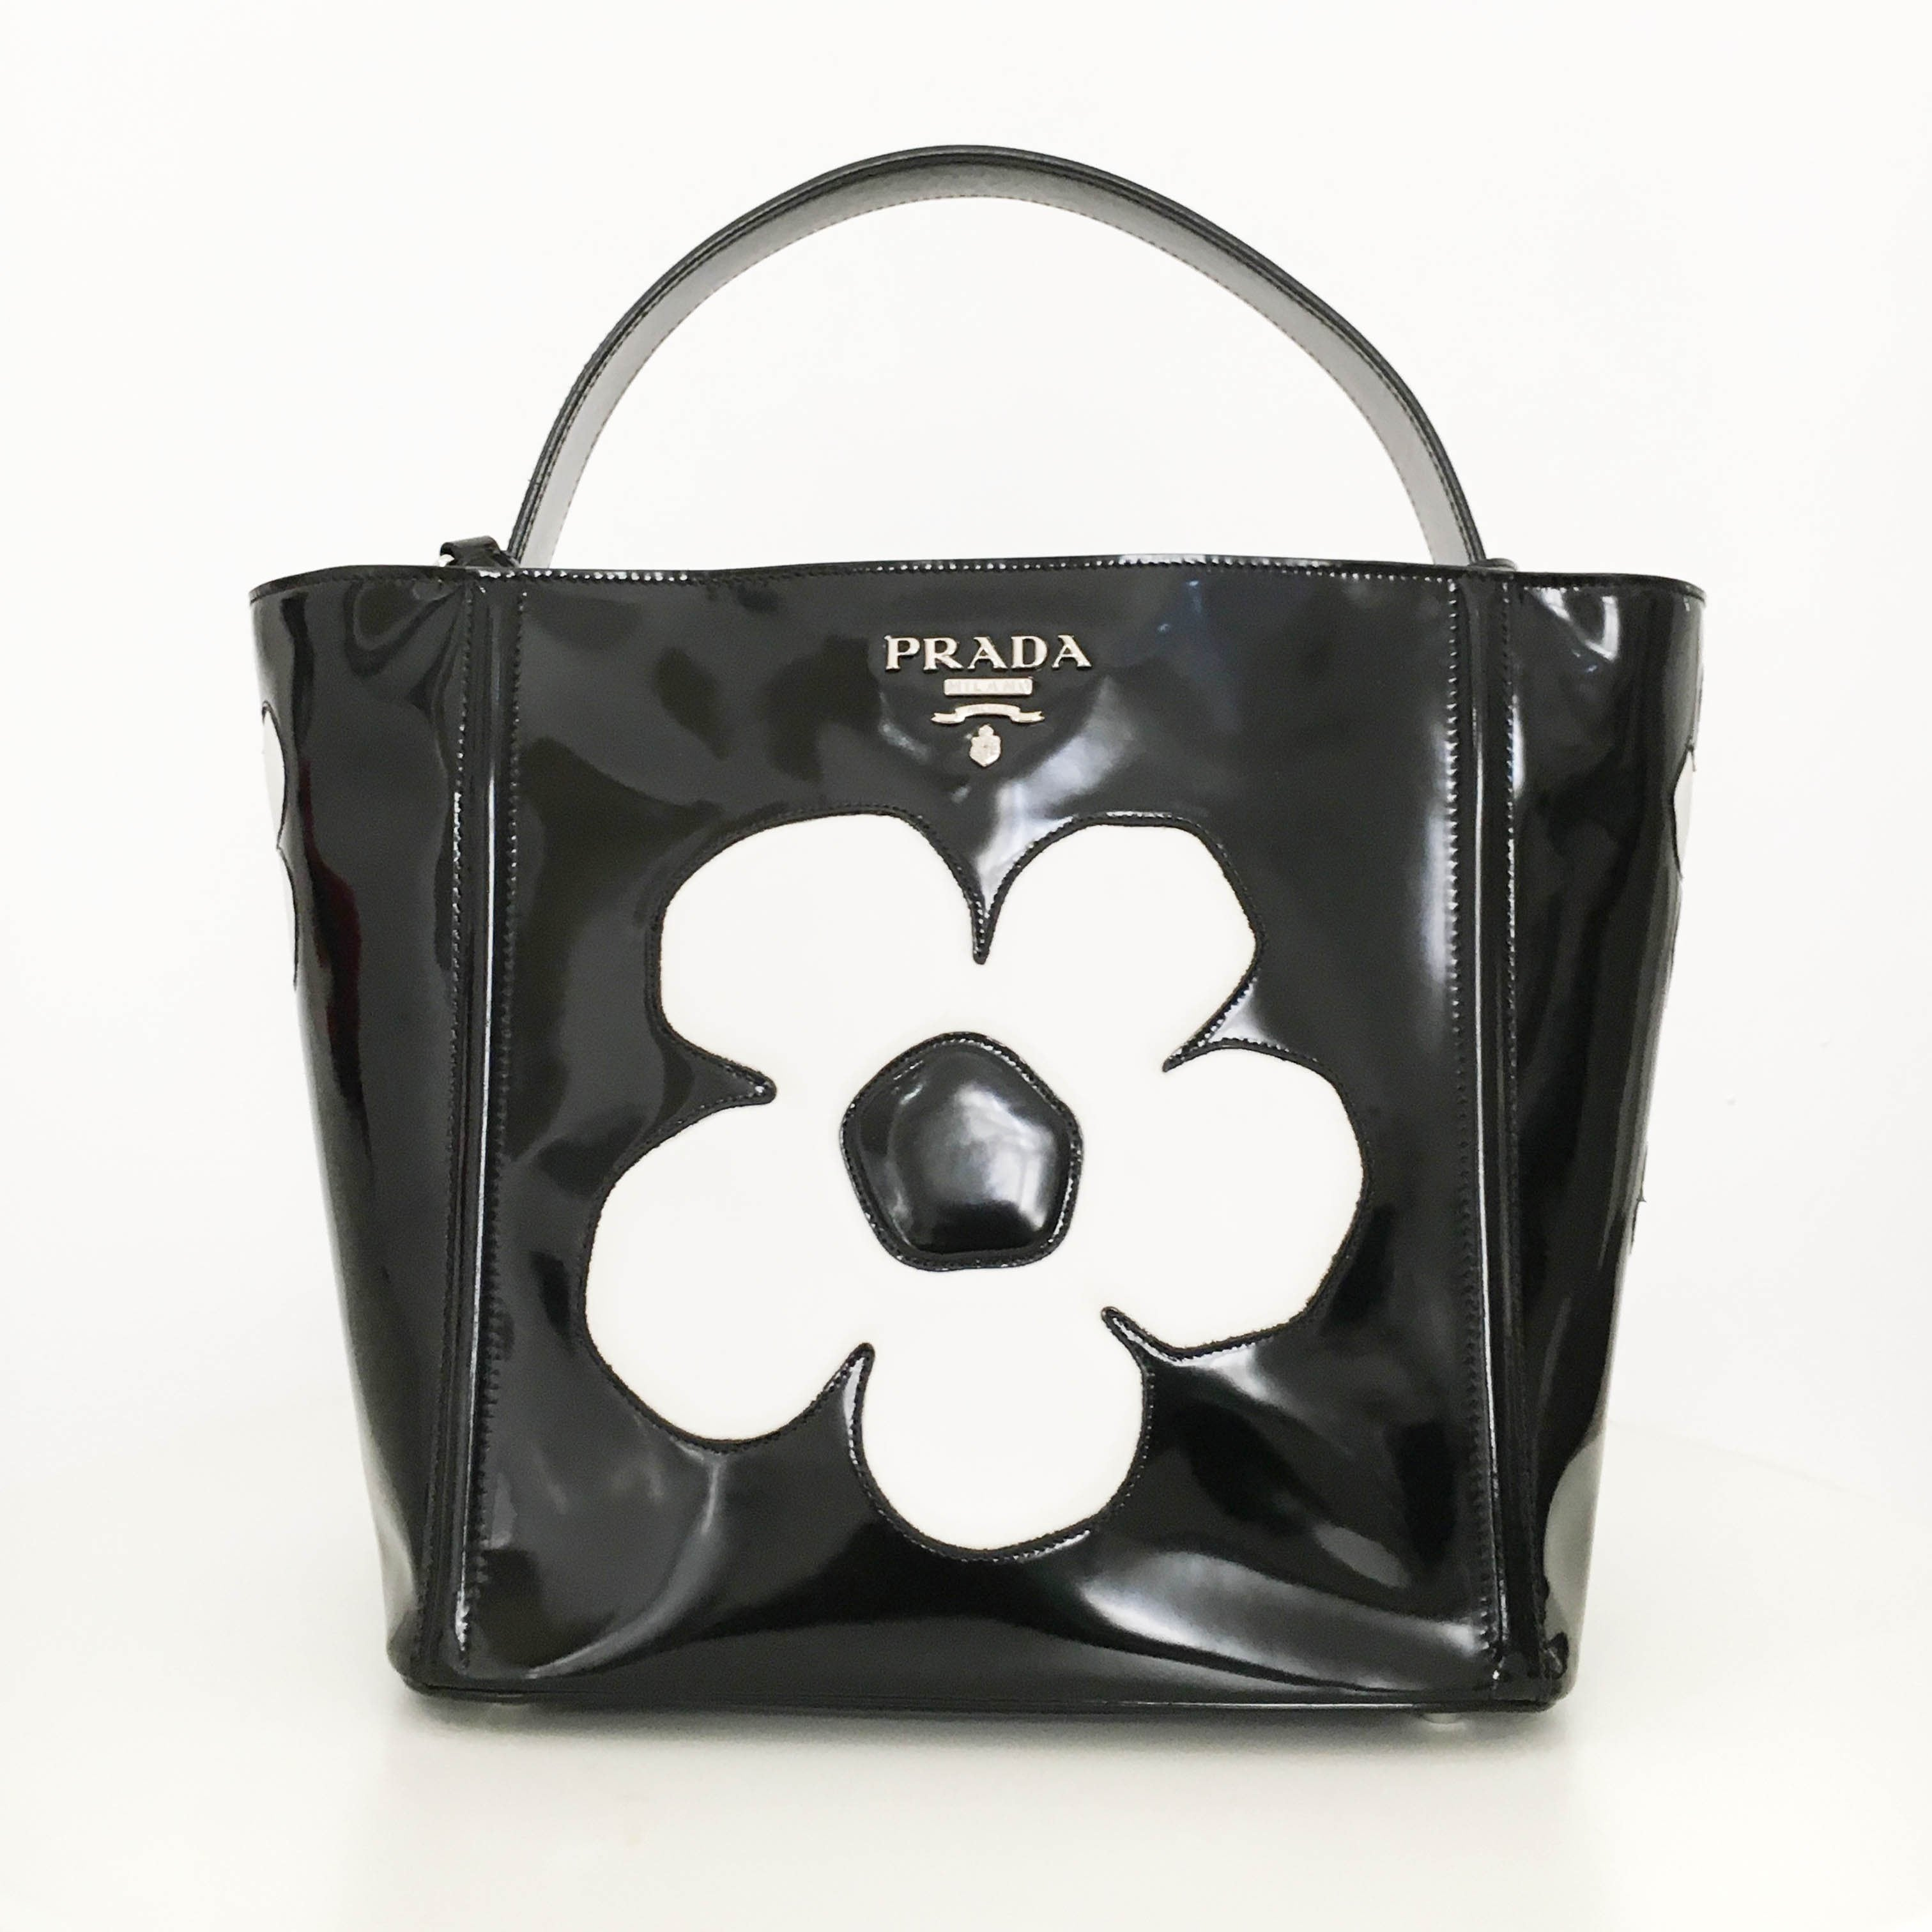 Prada Spazzolato Floral Open Bucket Bag